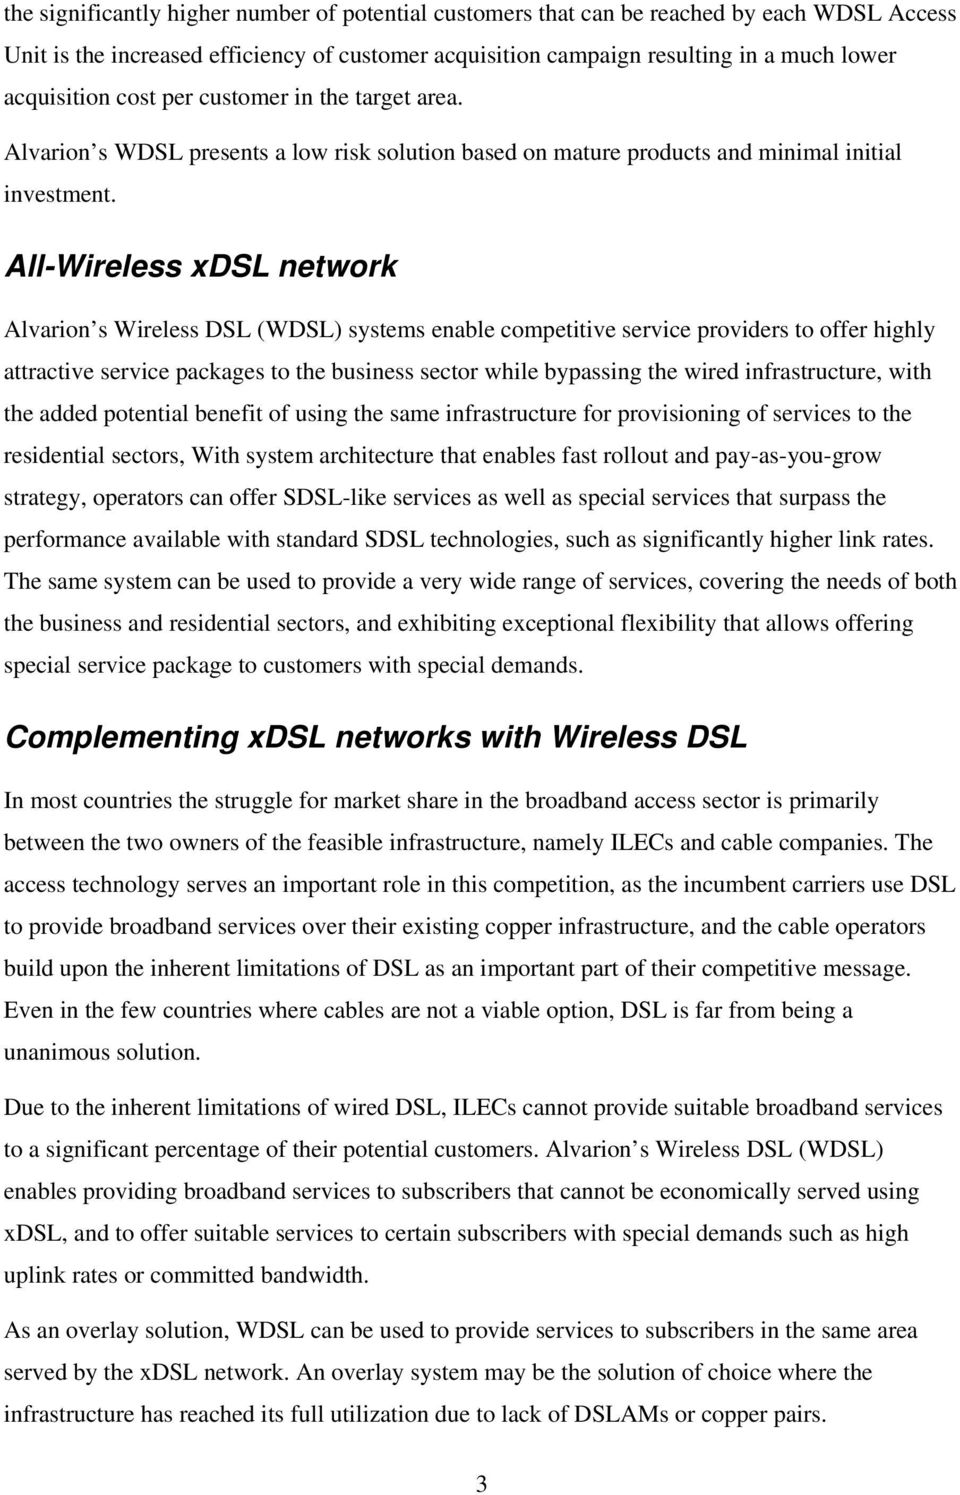 All-Wireless xdsl network Alvarion s Wireless DSL (WDSL) systems enable competitive service providers to offer highly attractive service packages to the business sector while bypassing the wired